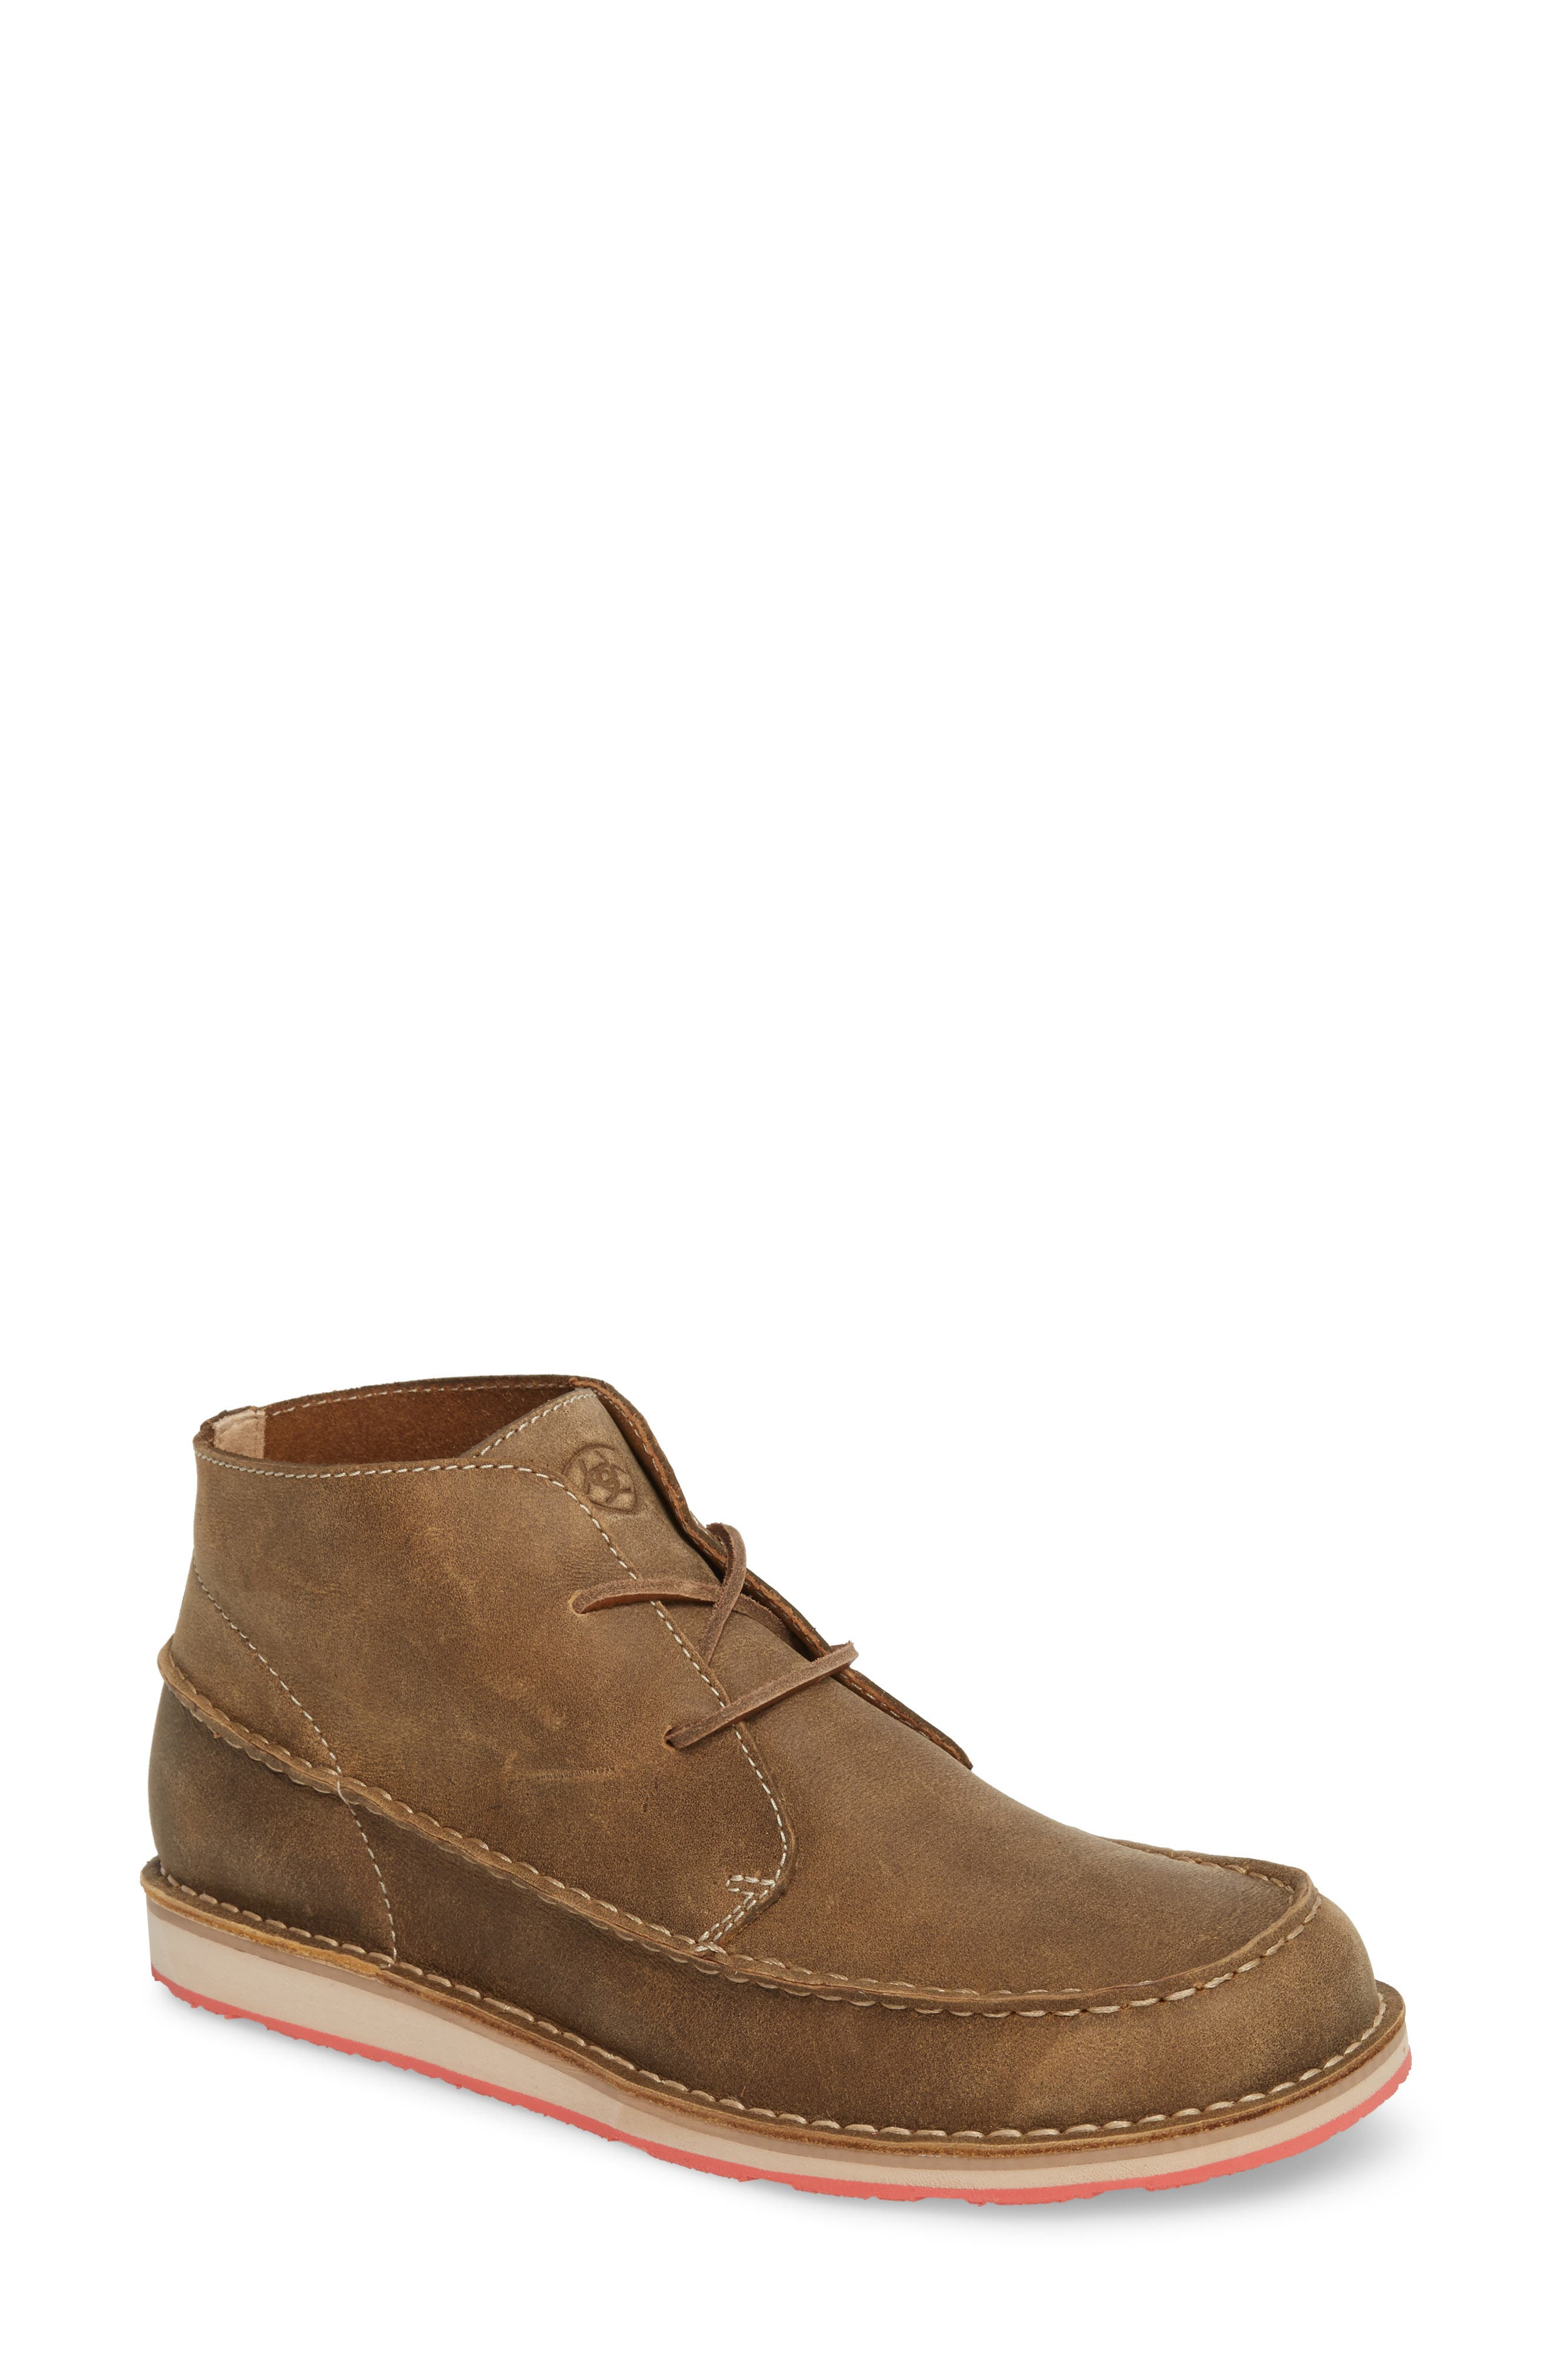 Cruiser Chukka Boot, Lace Brown Bomber Leather